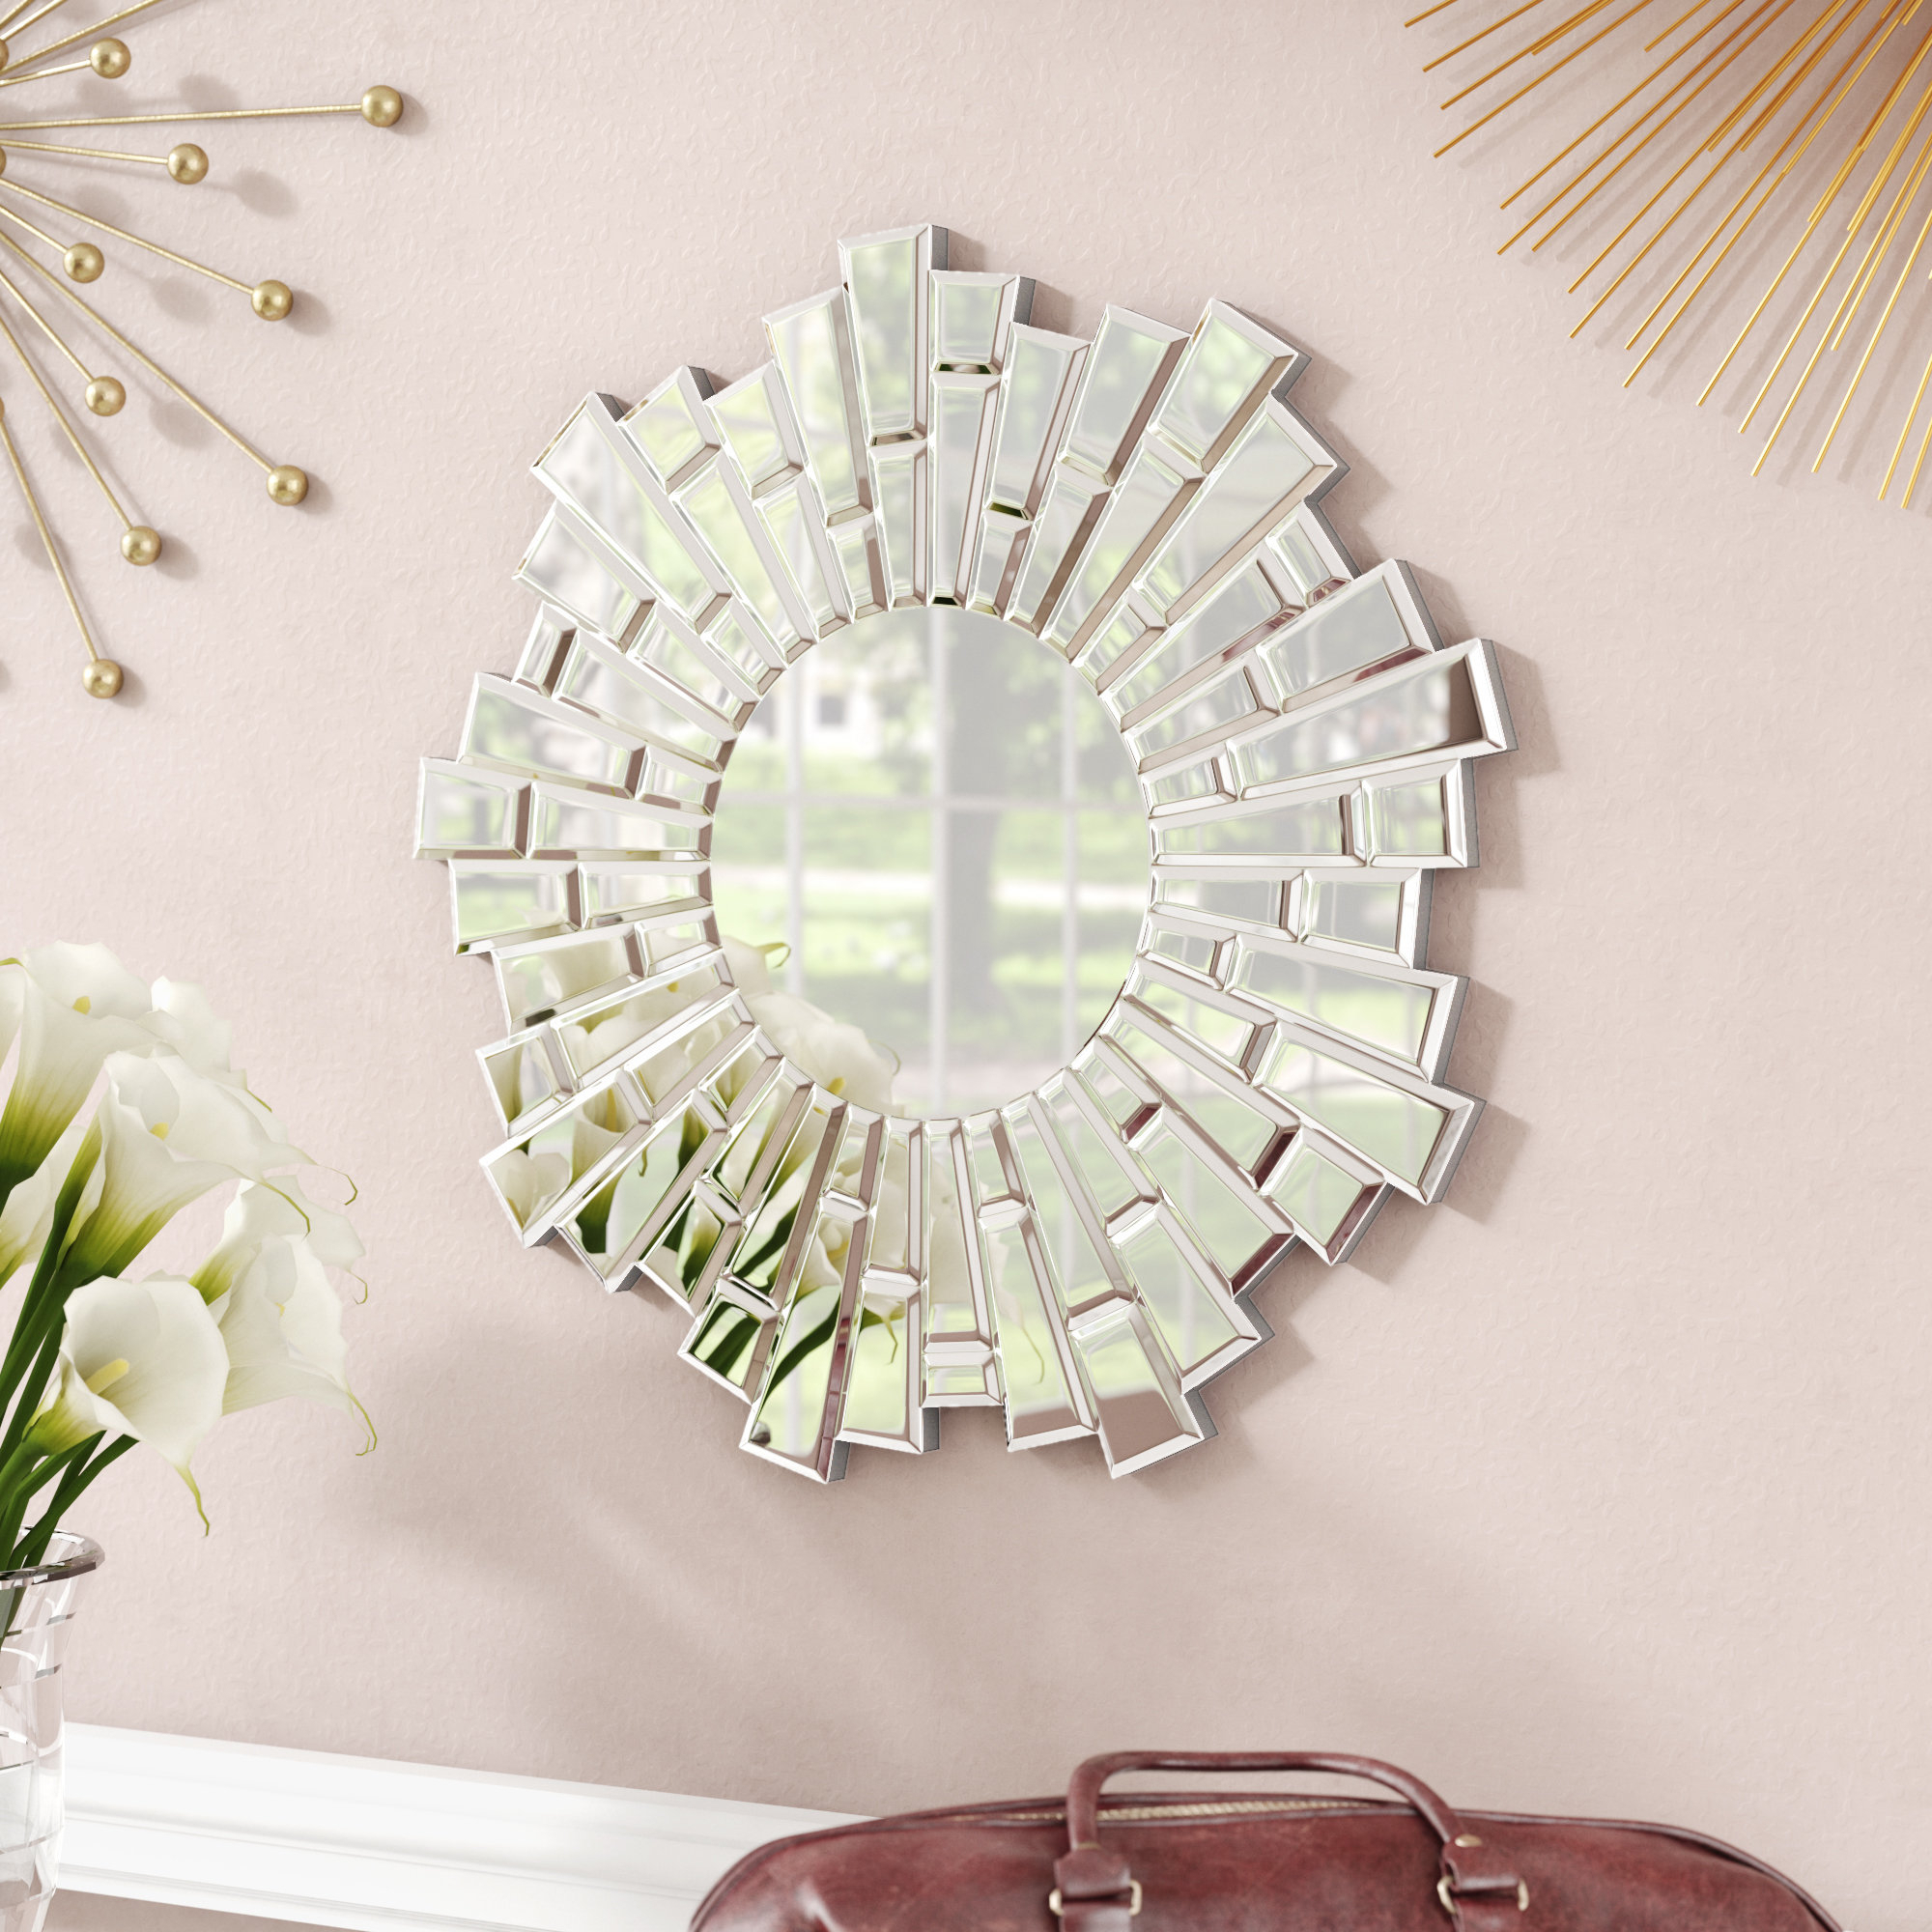 Widely Used Naoma Modern Sunburst Glass Accent Mirror Within Deniece Sunburst Round Wall Mirrors (View 14 of 20)